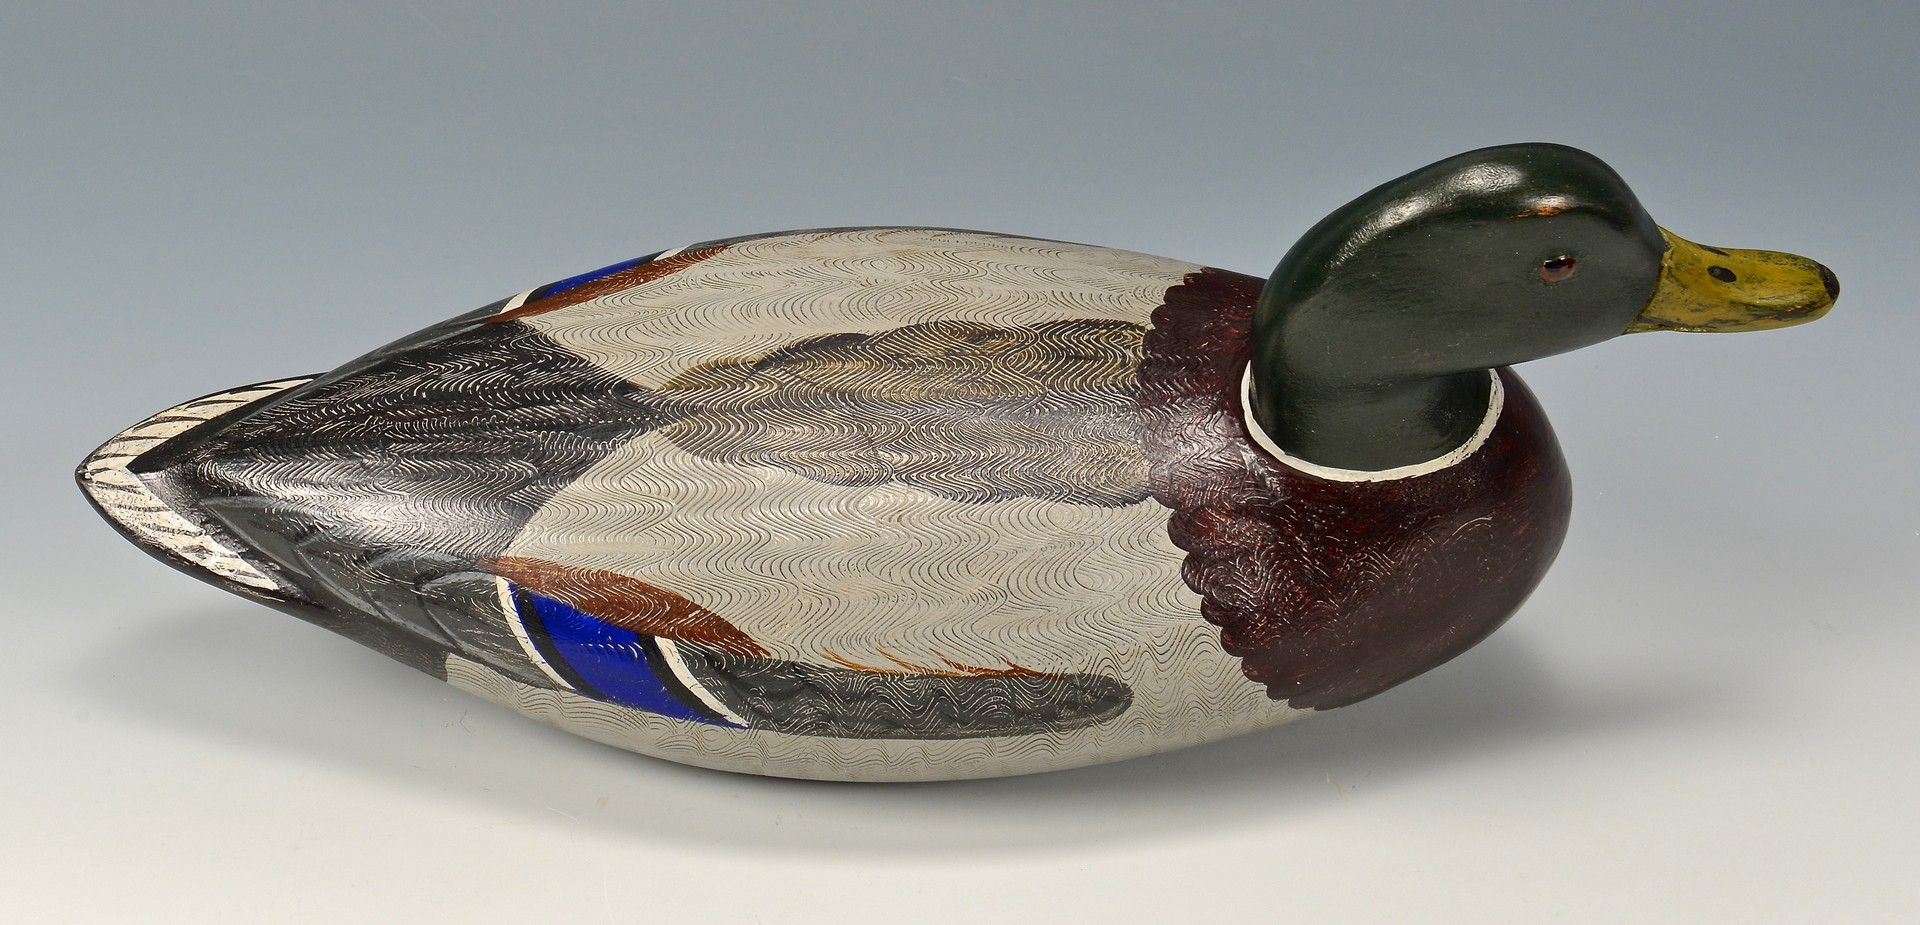 Lot 279: 4 Carved & Painted Duck Decoys, 2 signed